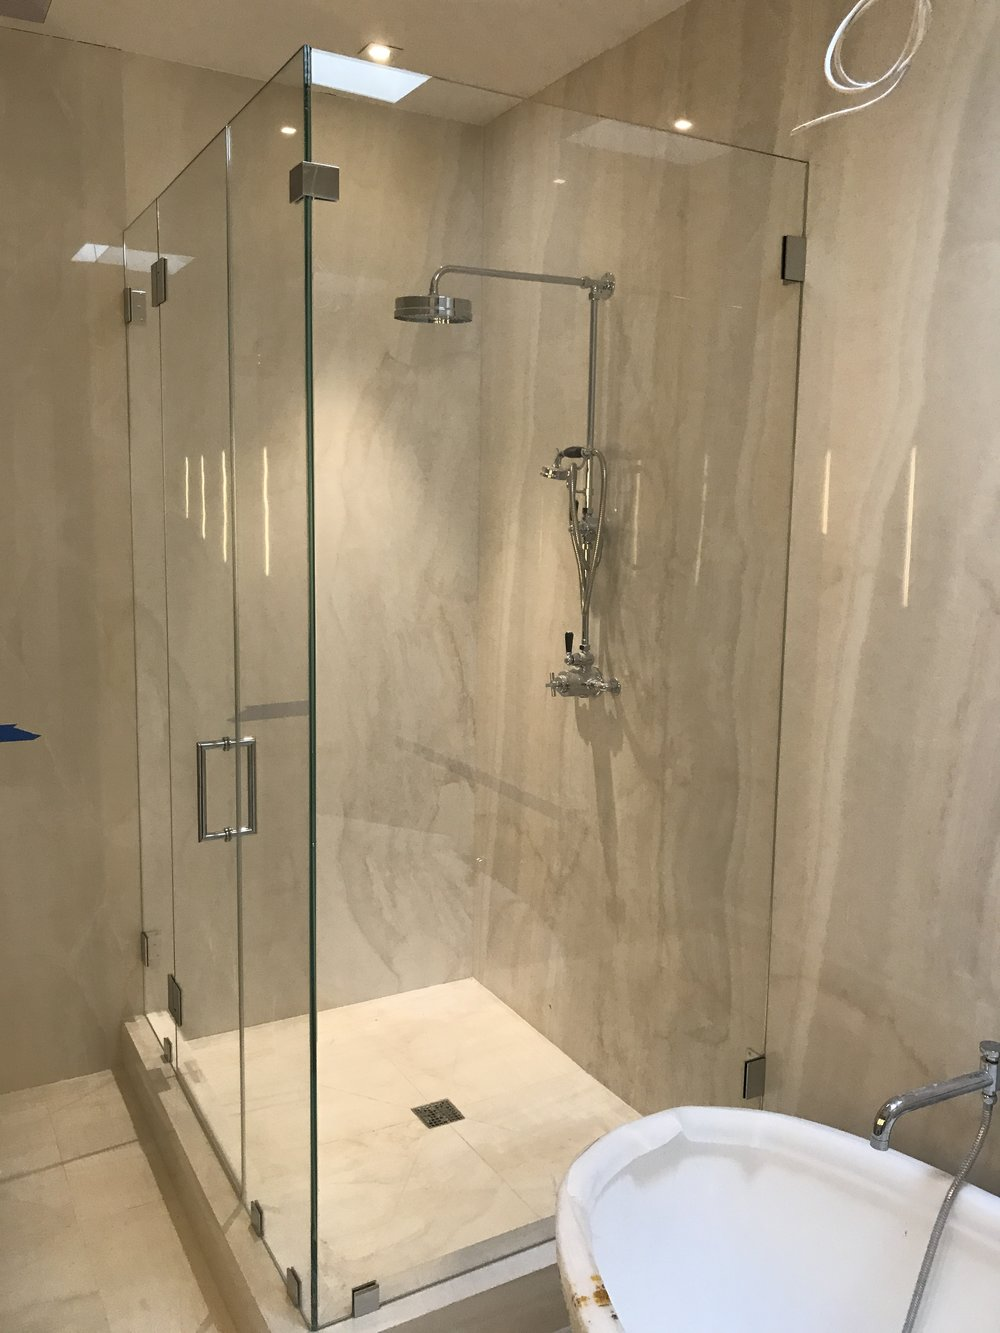 Tiled Shower gets a new Glass Door